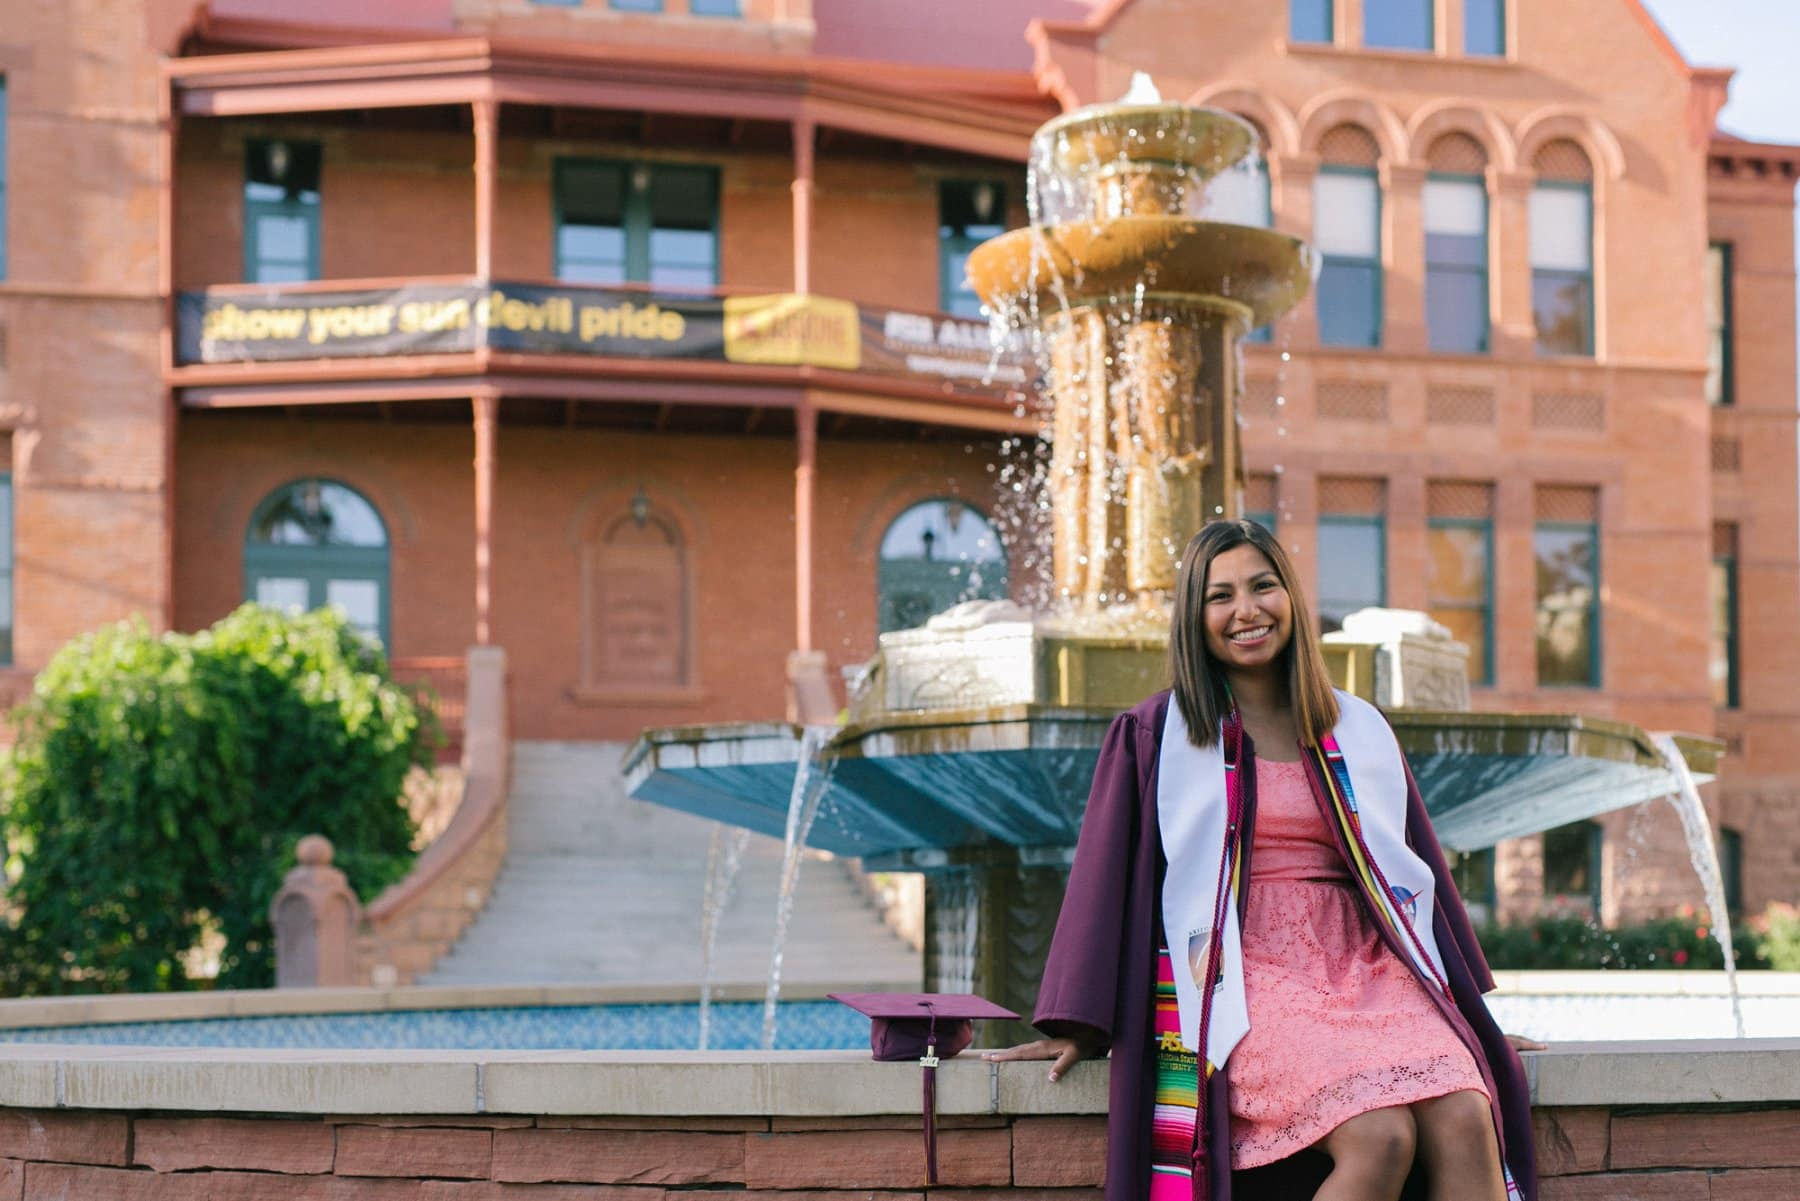 ASU graduation photos in front of Old Main fountain